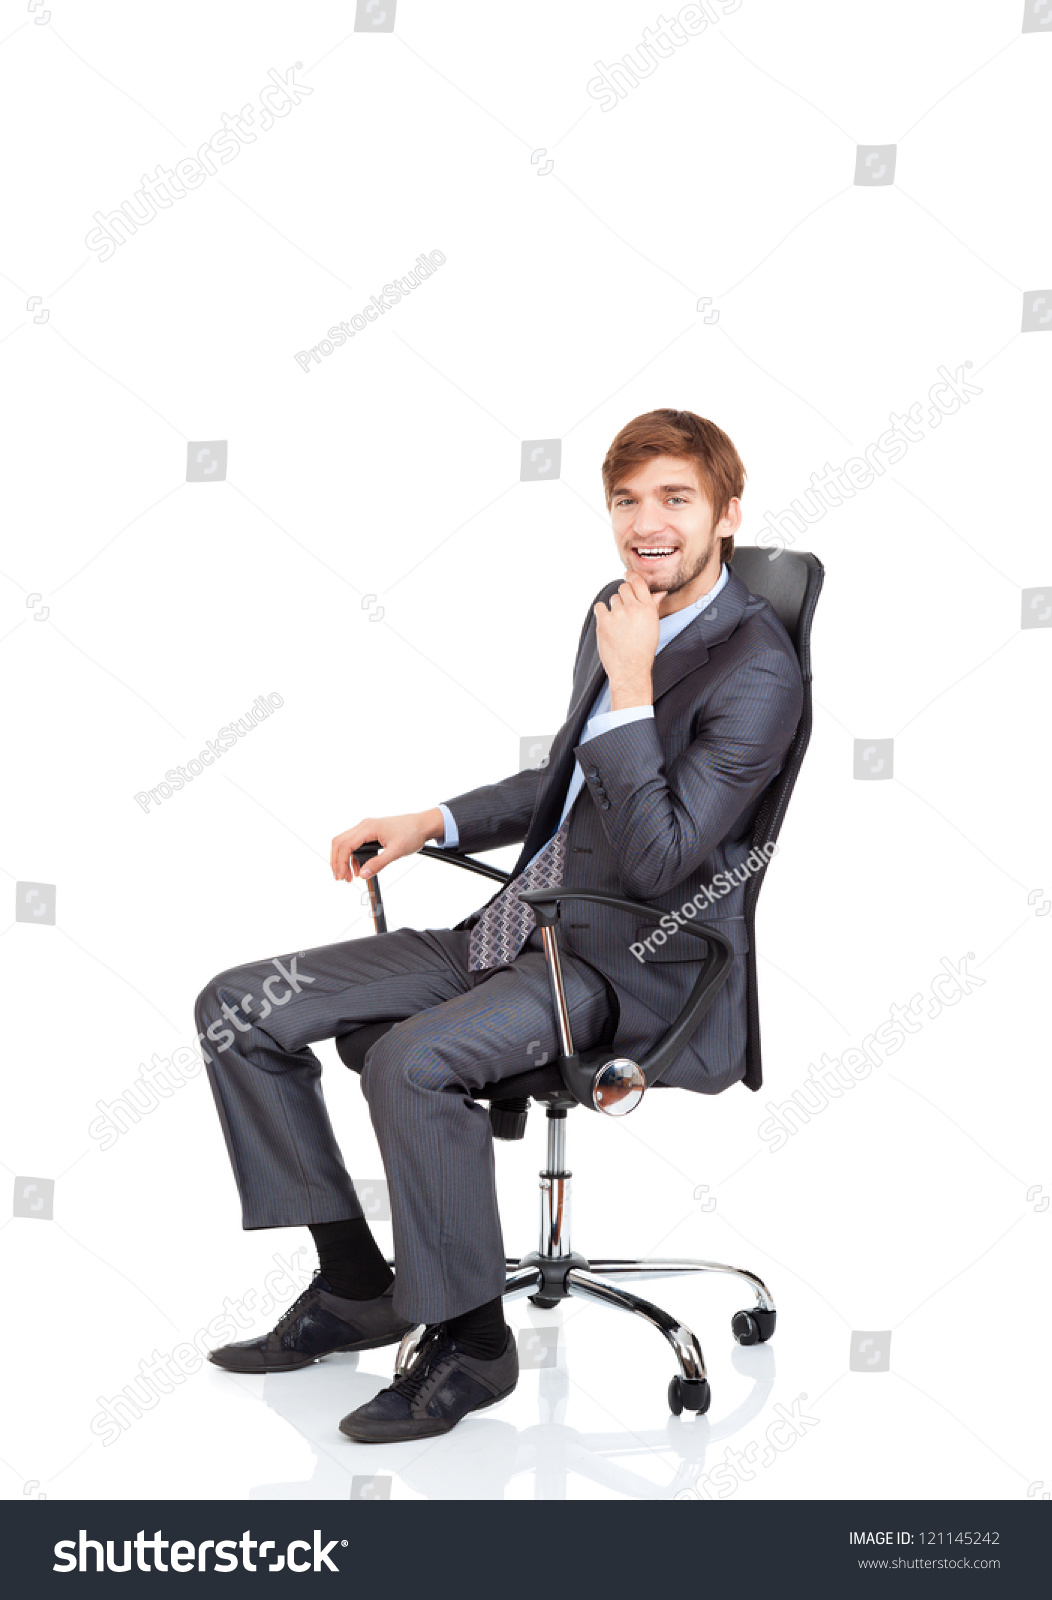 Technology Management Image: Businessman Happy Smile Sitting Chair Business Stock Photo